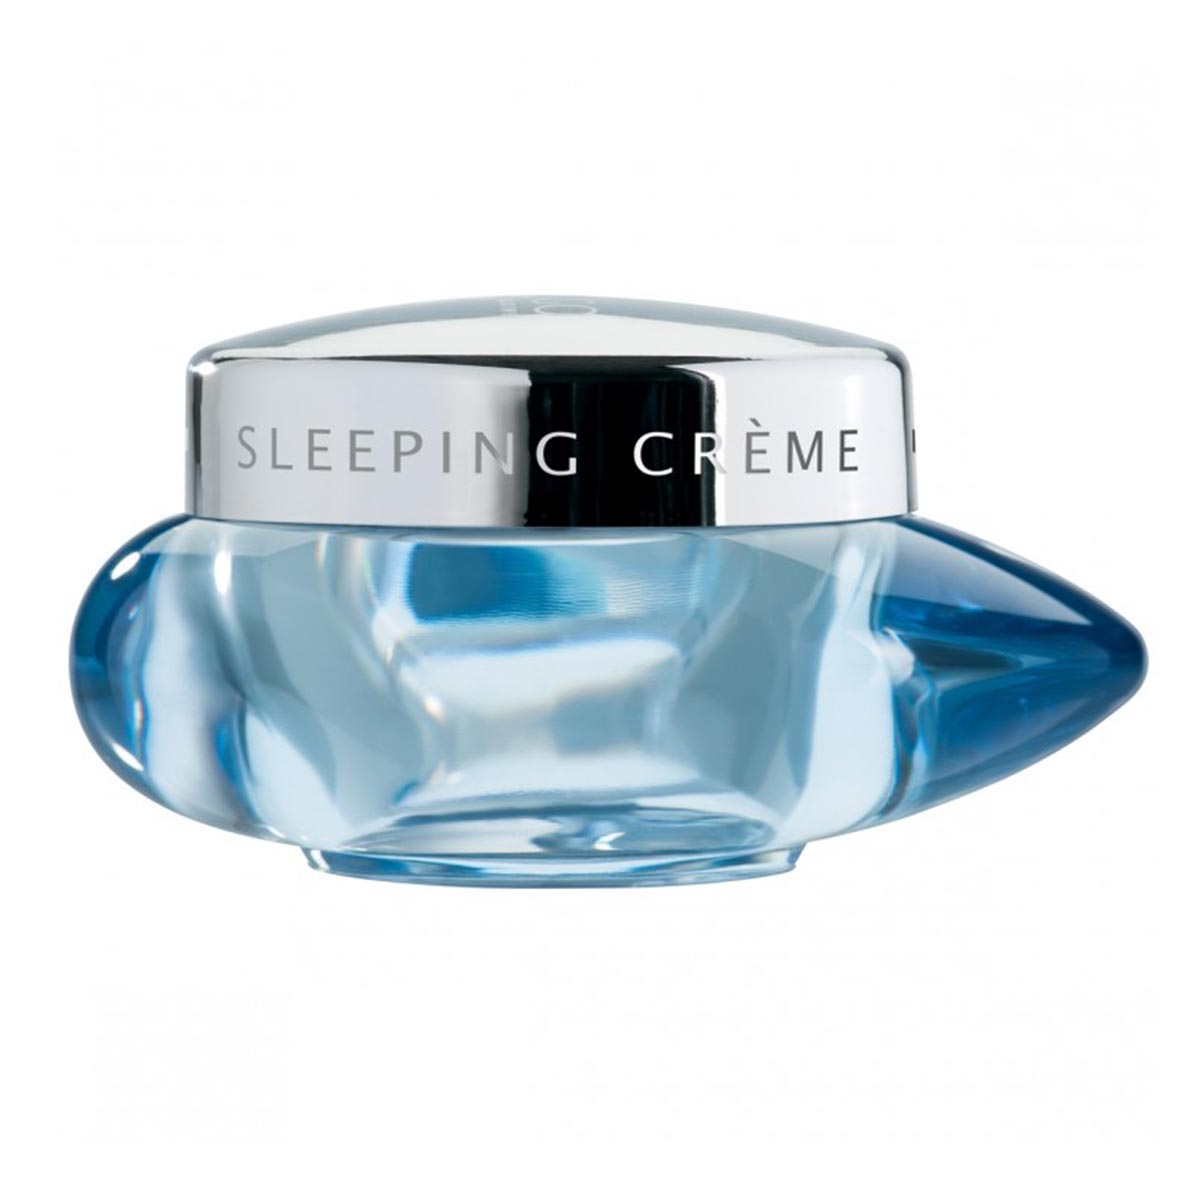 Thalgo sleeping creme 50ml